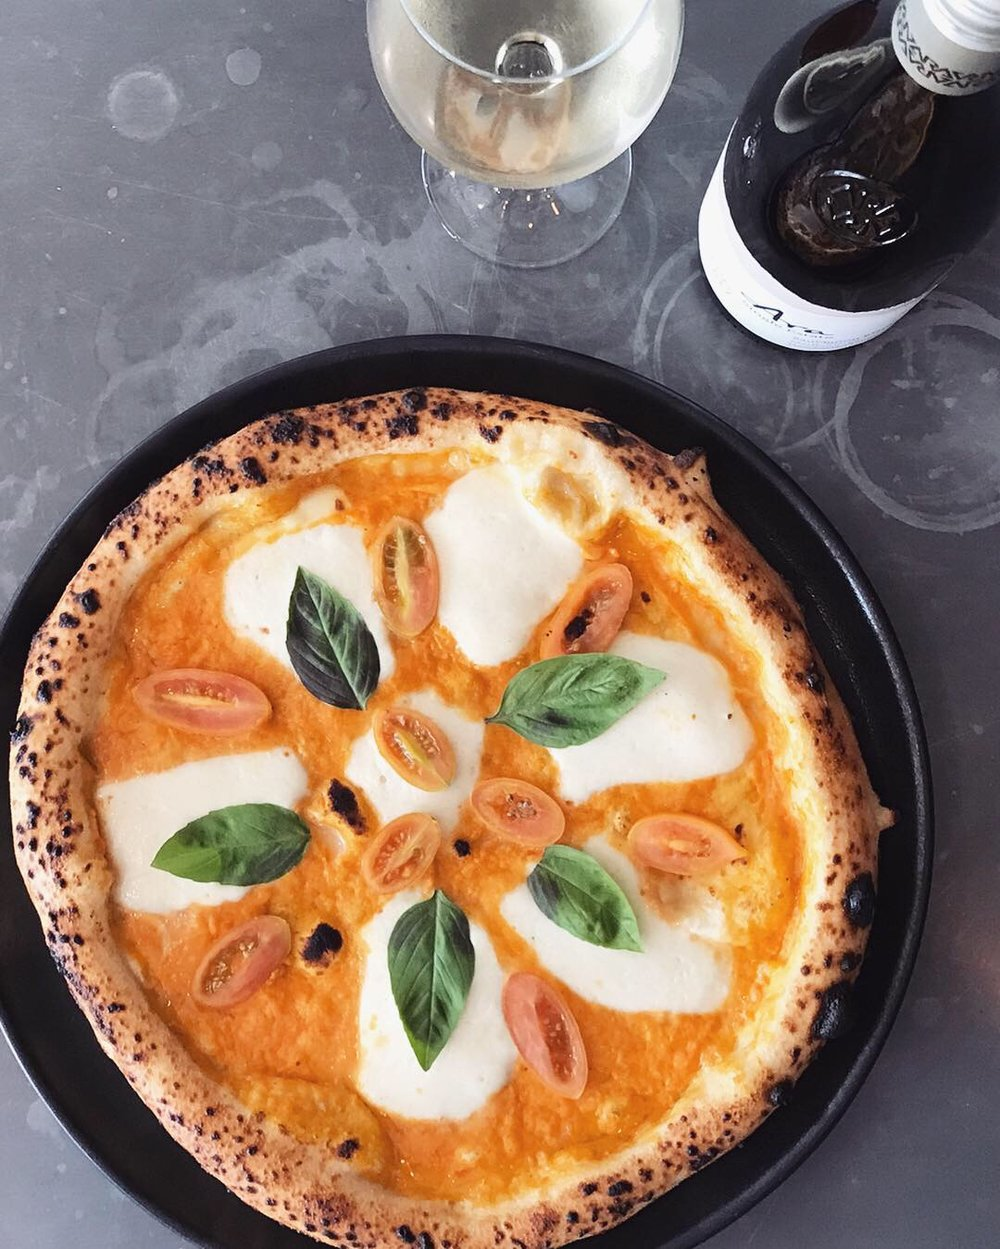 27 Feb - 5 Mar - I bet you've never seen a Margherita like that!Yellow heirloom tomato, fior di latte mozzarella, basil and the youngest, lightest extra virgin olive oil.This week we see things in a different colour!Perfectly matched with a light and fruity Ara Sauvignon Blanc (Marlborough, NZ).